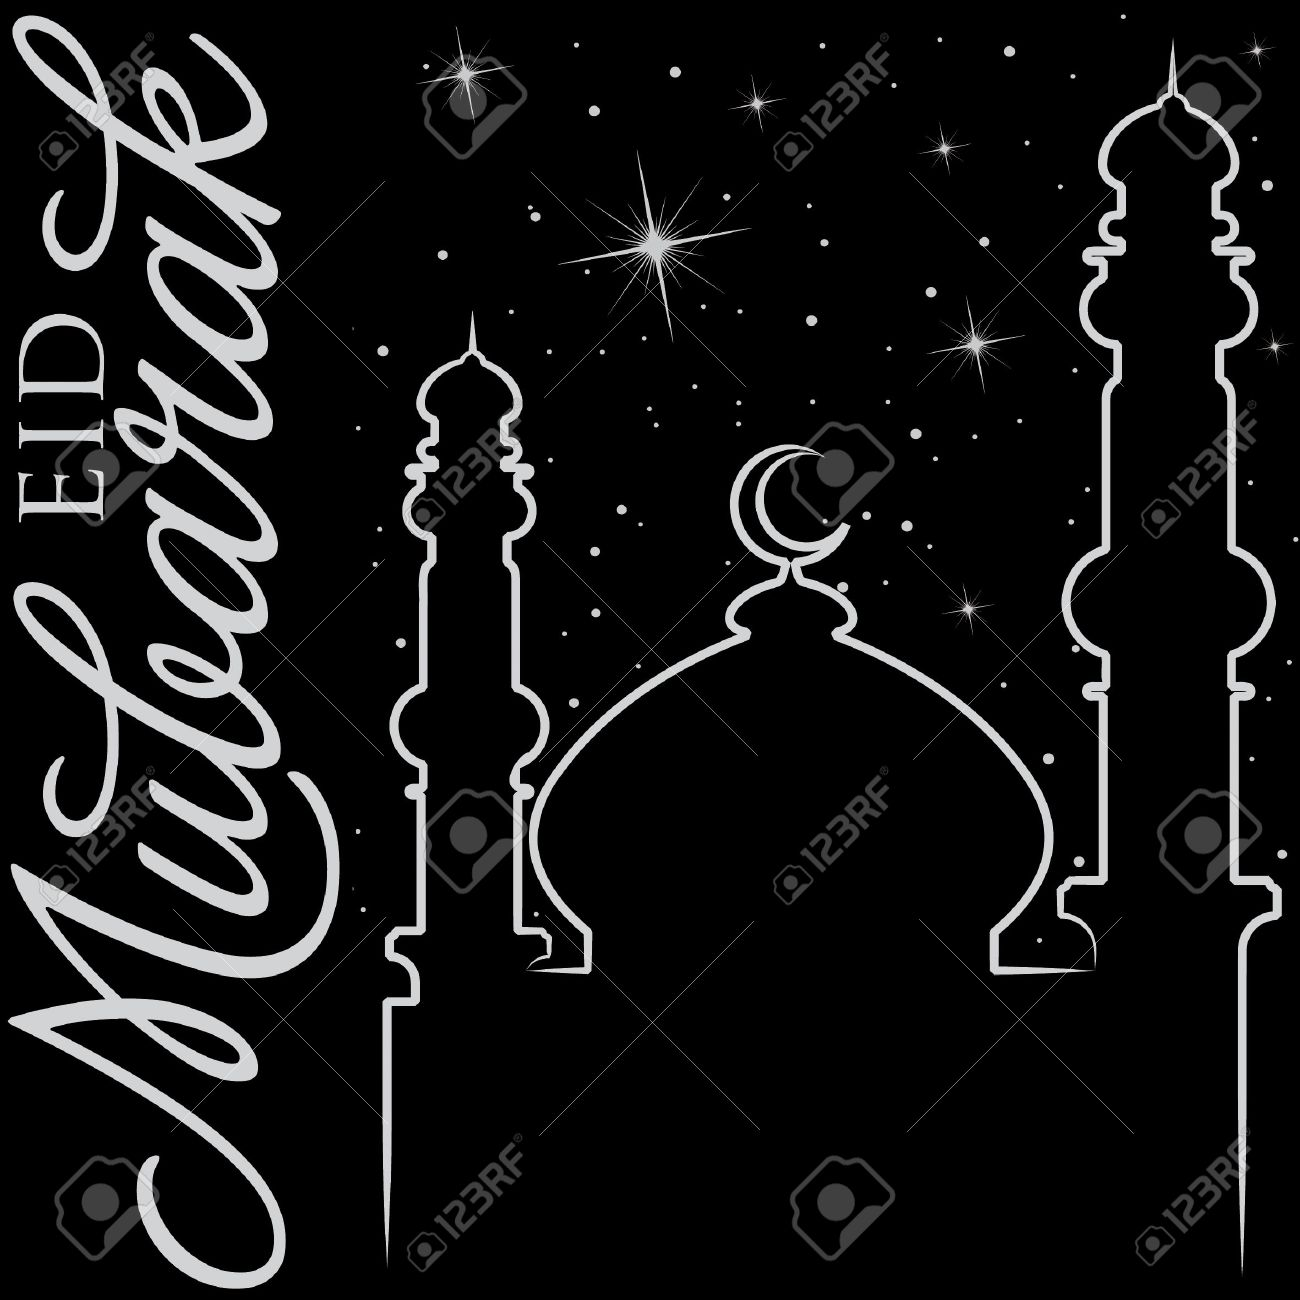 Hand drawn eid mubarak blessed eid greeting card royalty free hand drawn eid mubarak blessed eid greeting card stock vector 19398569 kristyandbryce Image collections